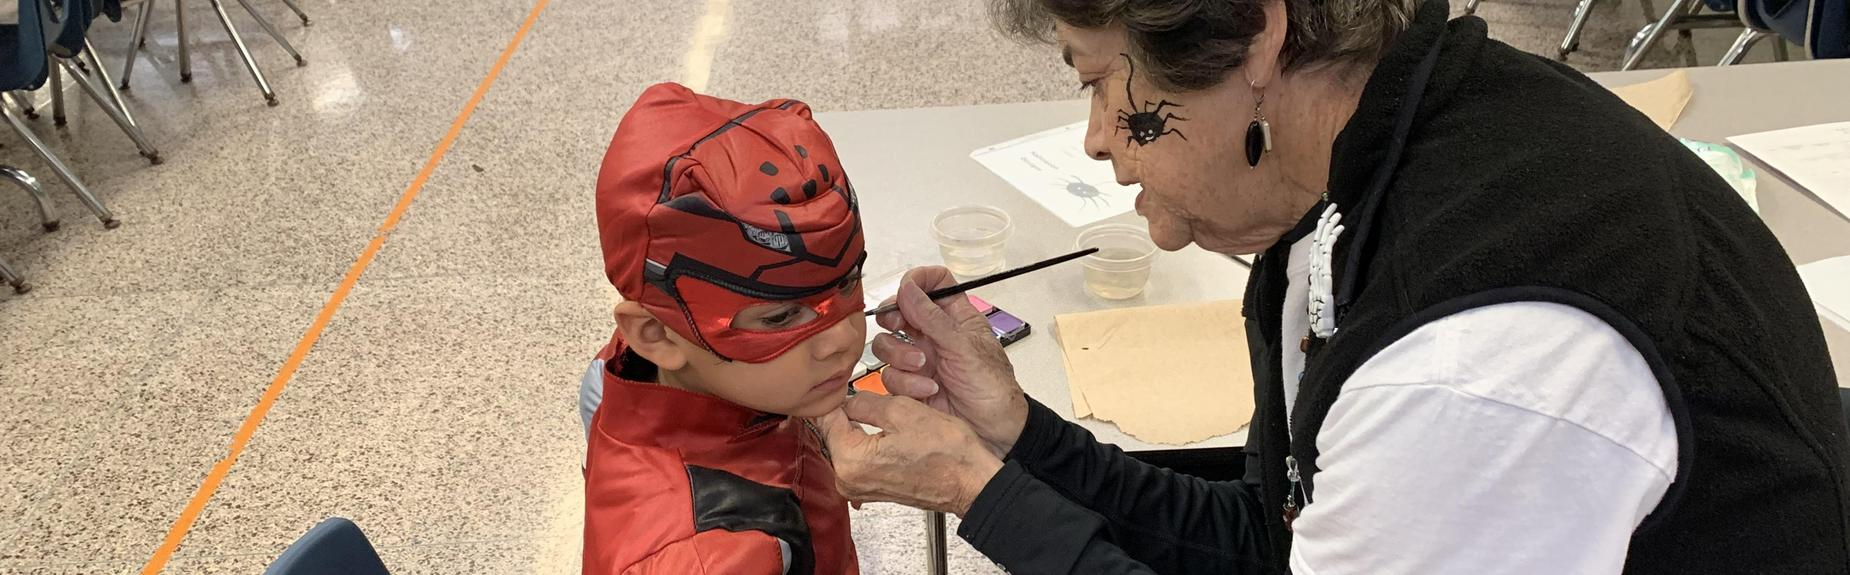 Volunteer painting face at Fall Festival